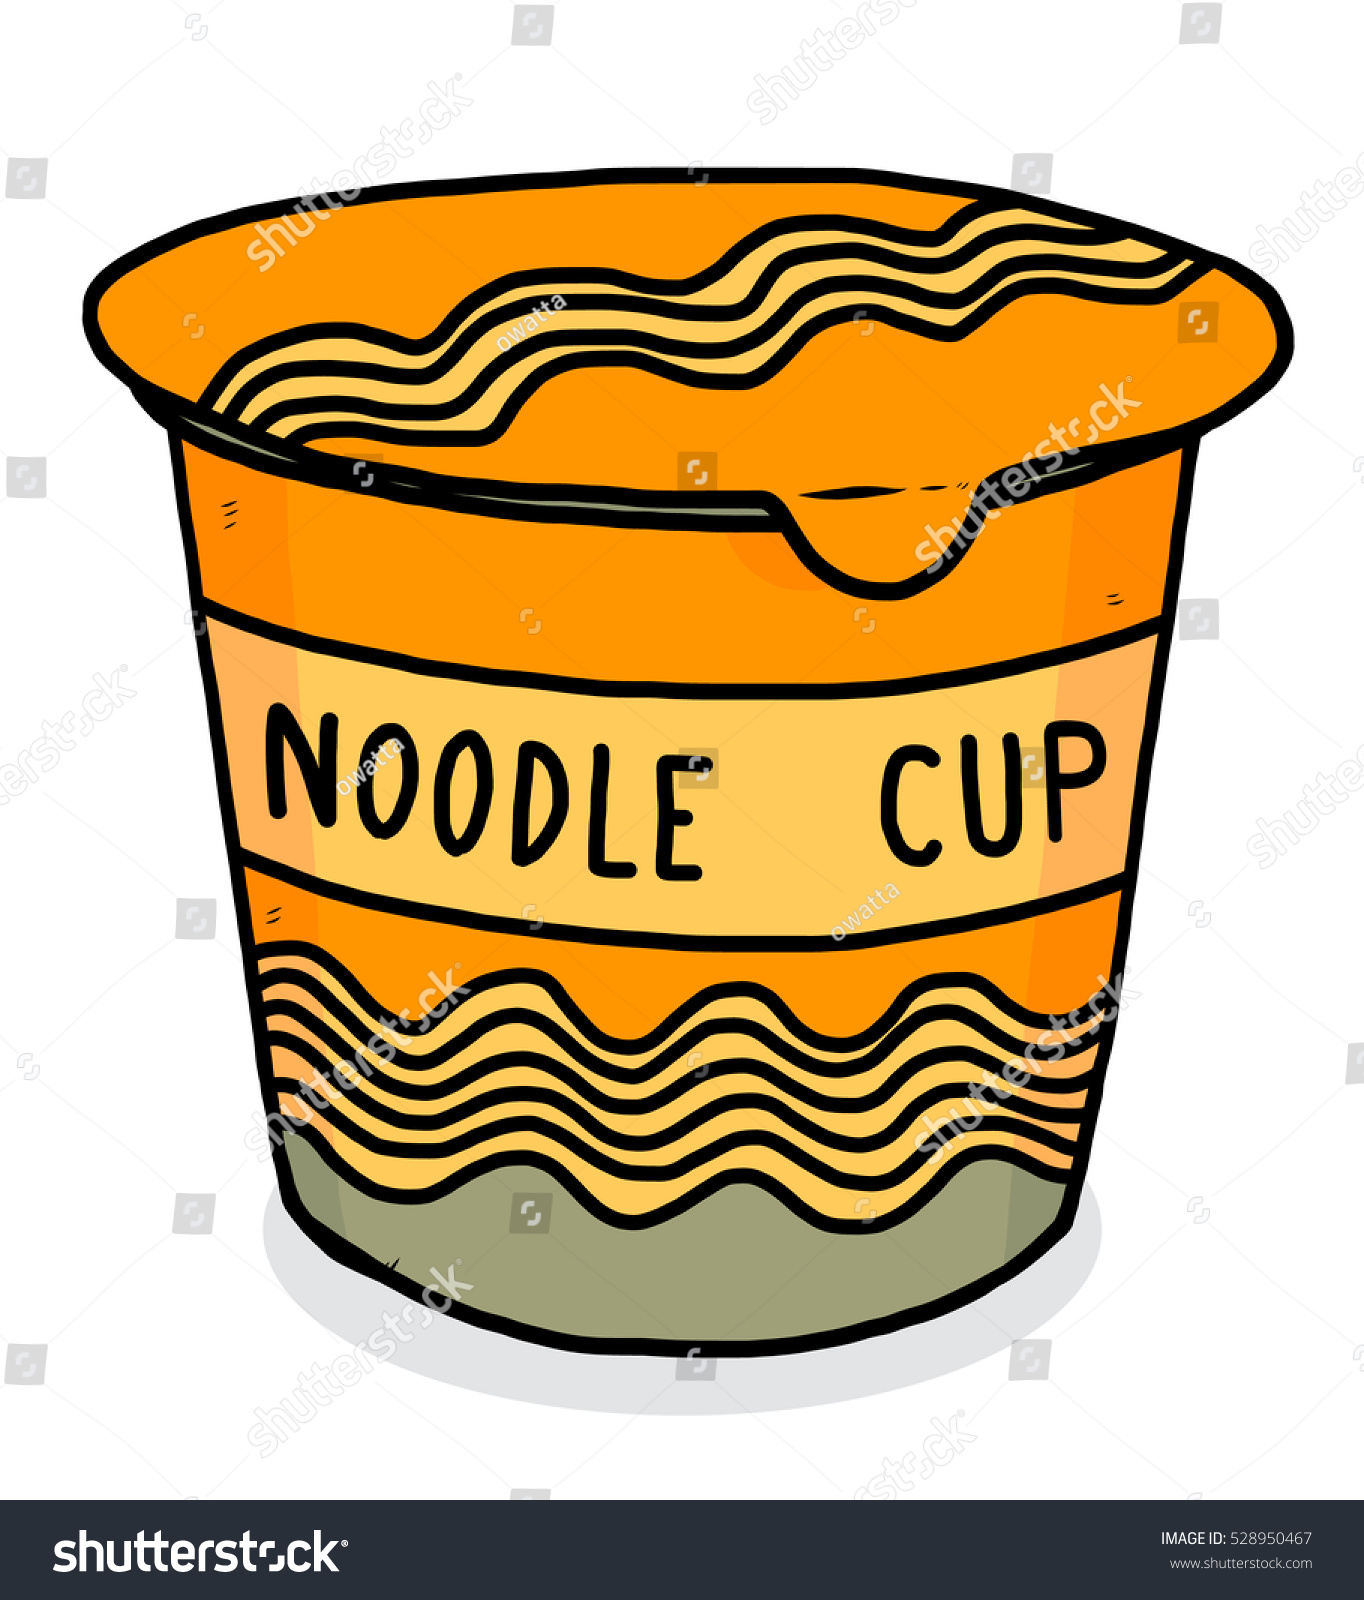 Cup noodles clipart png freeuse stock Noodles Clipart Black And White (93+ images in Collection) Page 2 png freeuse stock